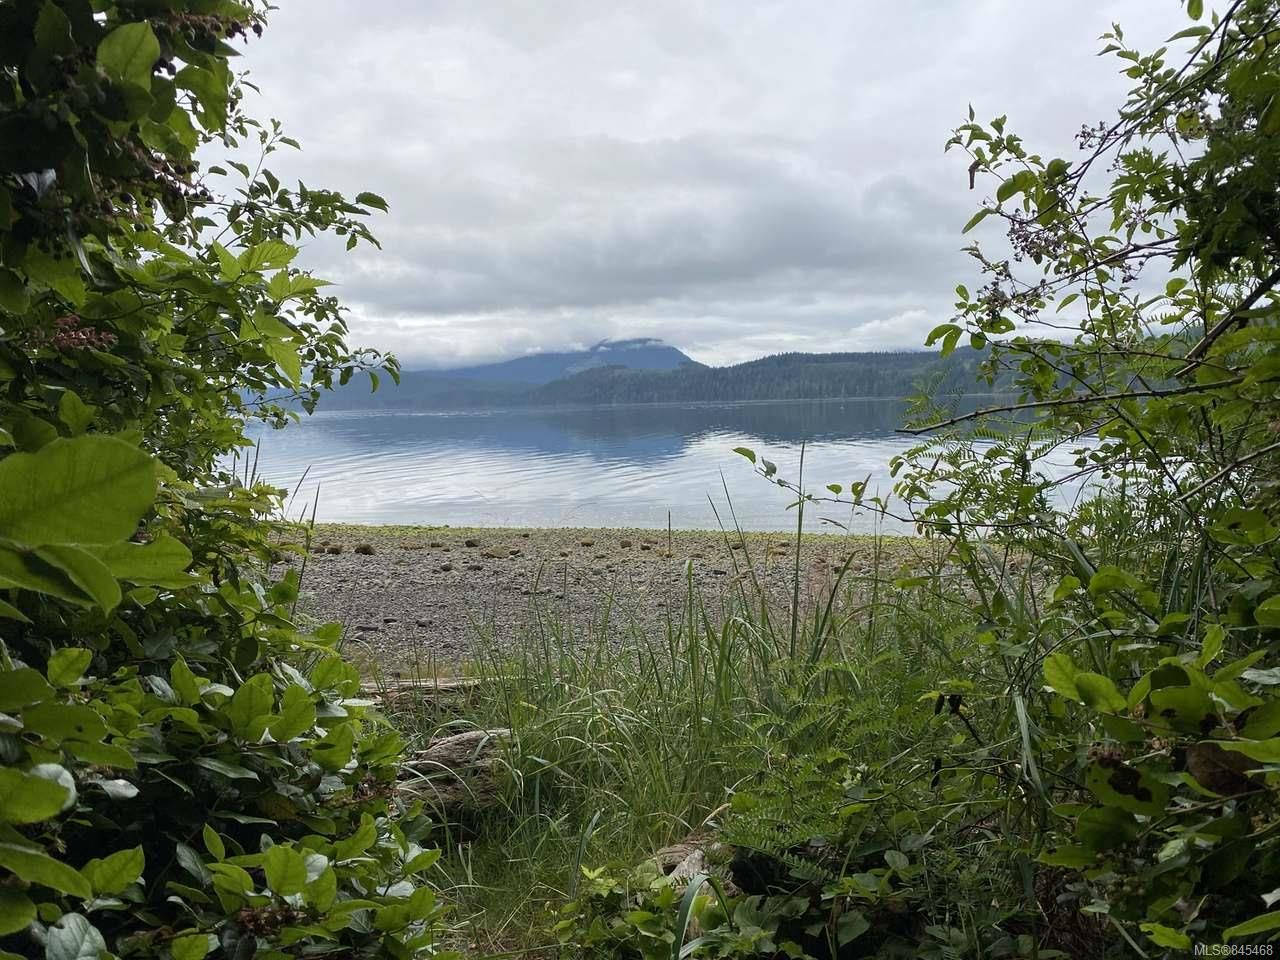 Photo 5: Photos: 0 Harbour Rd in PORT HARDY: NI Port Hardy Land for sale (North Island)  : MLS®# 845468